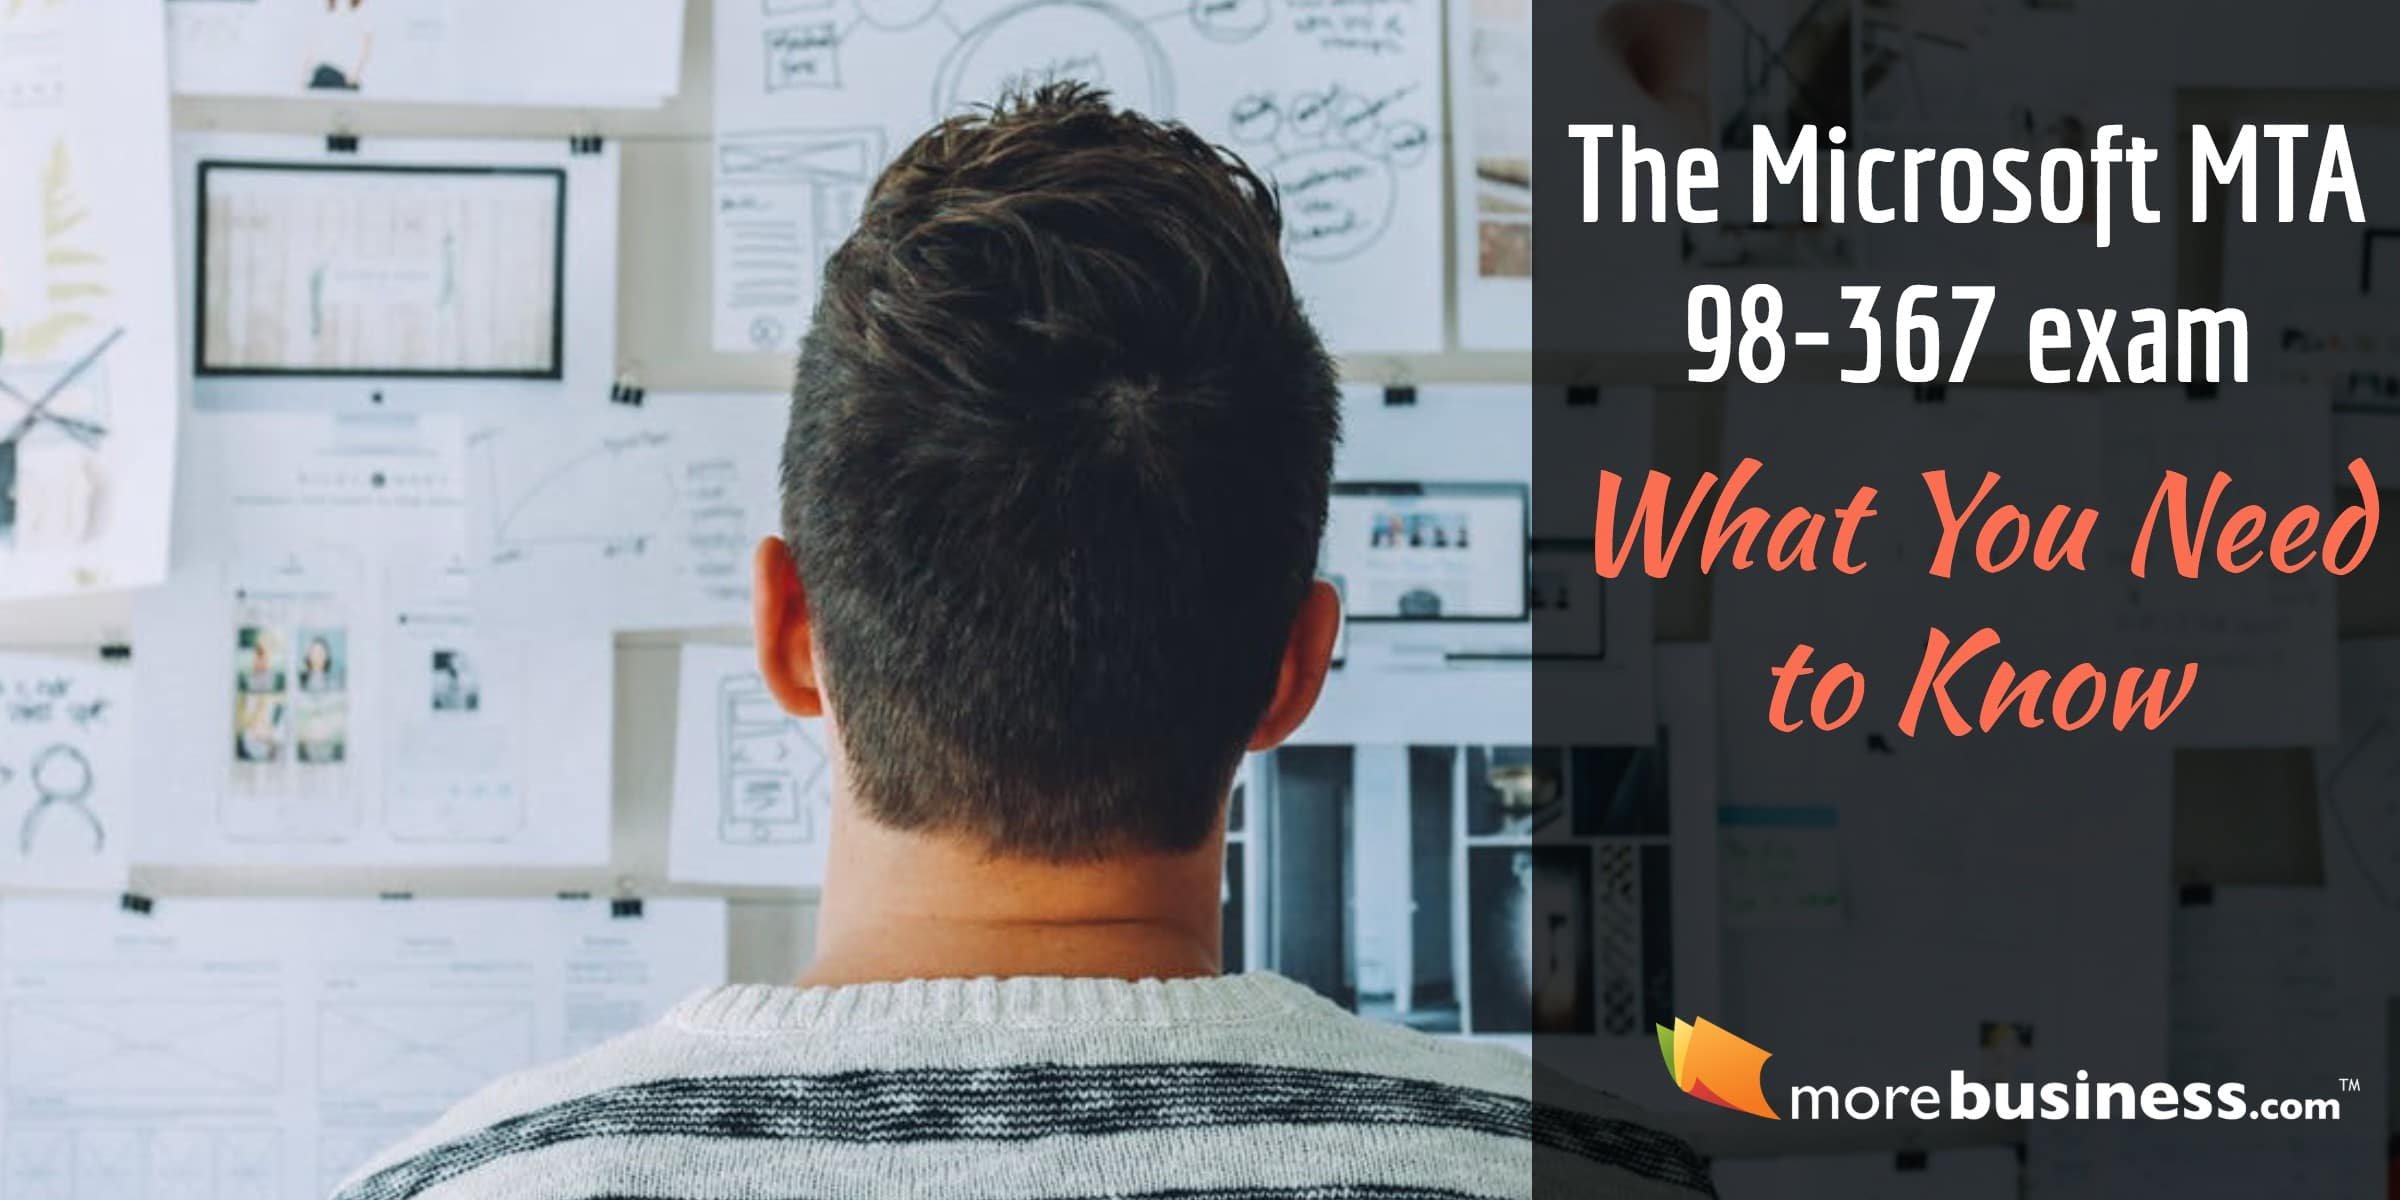 Microsoft Mta 98 367 Exam Heres What Youve Always Wanted To Know